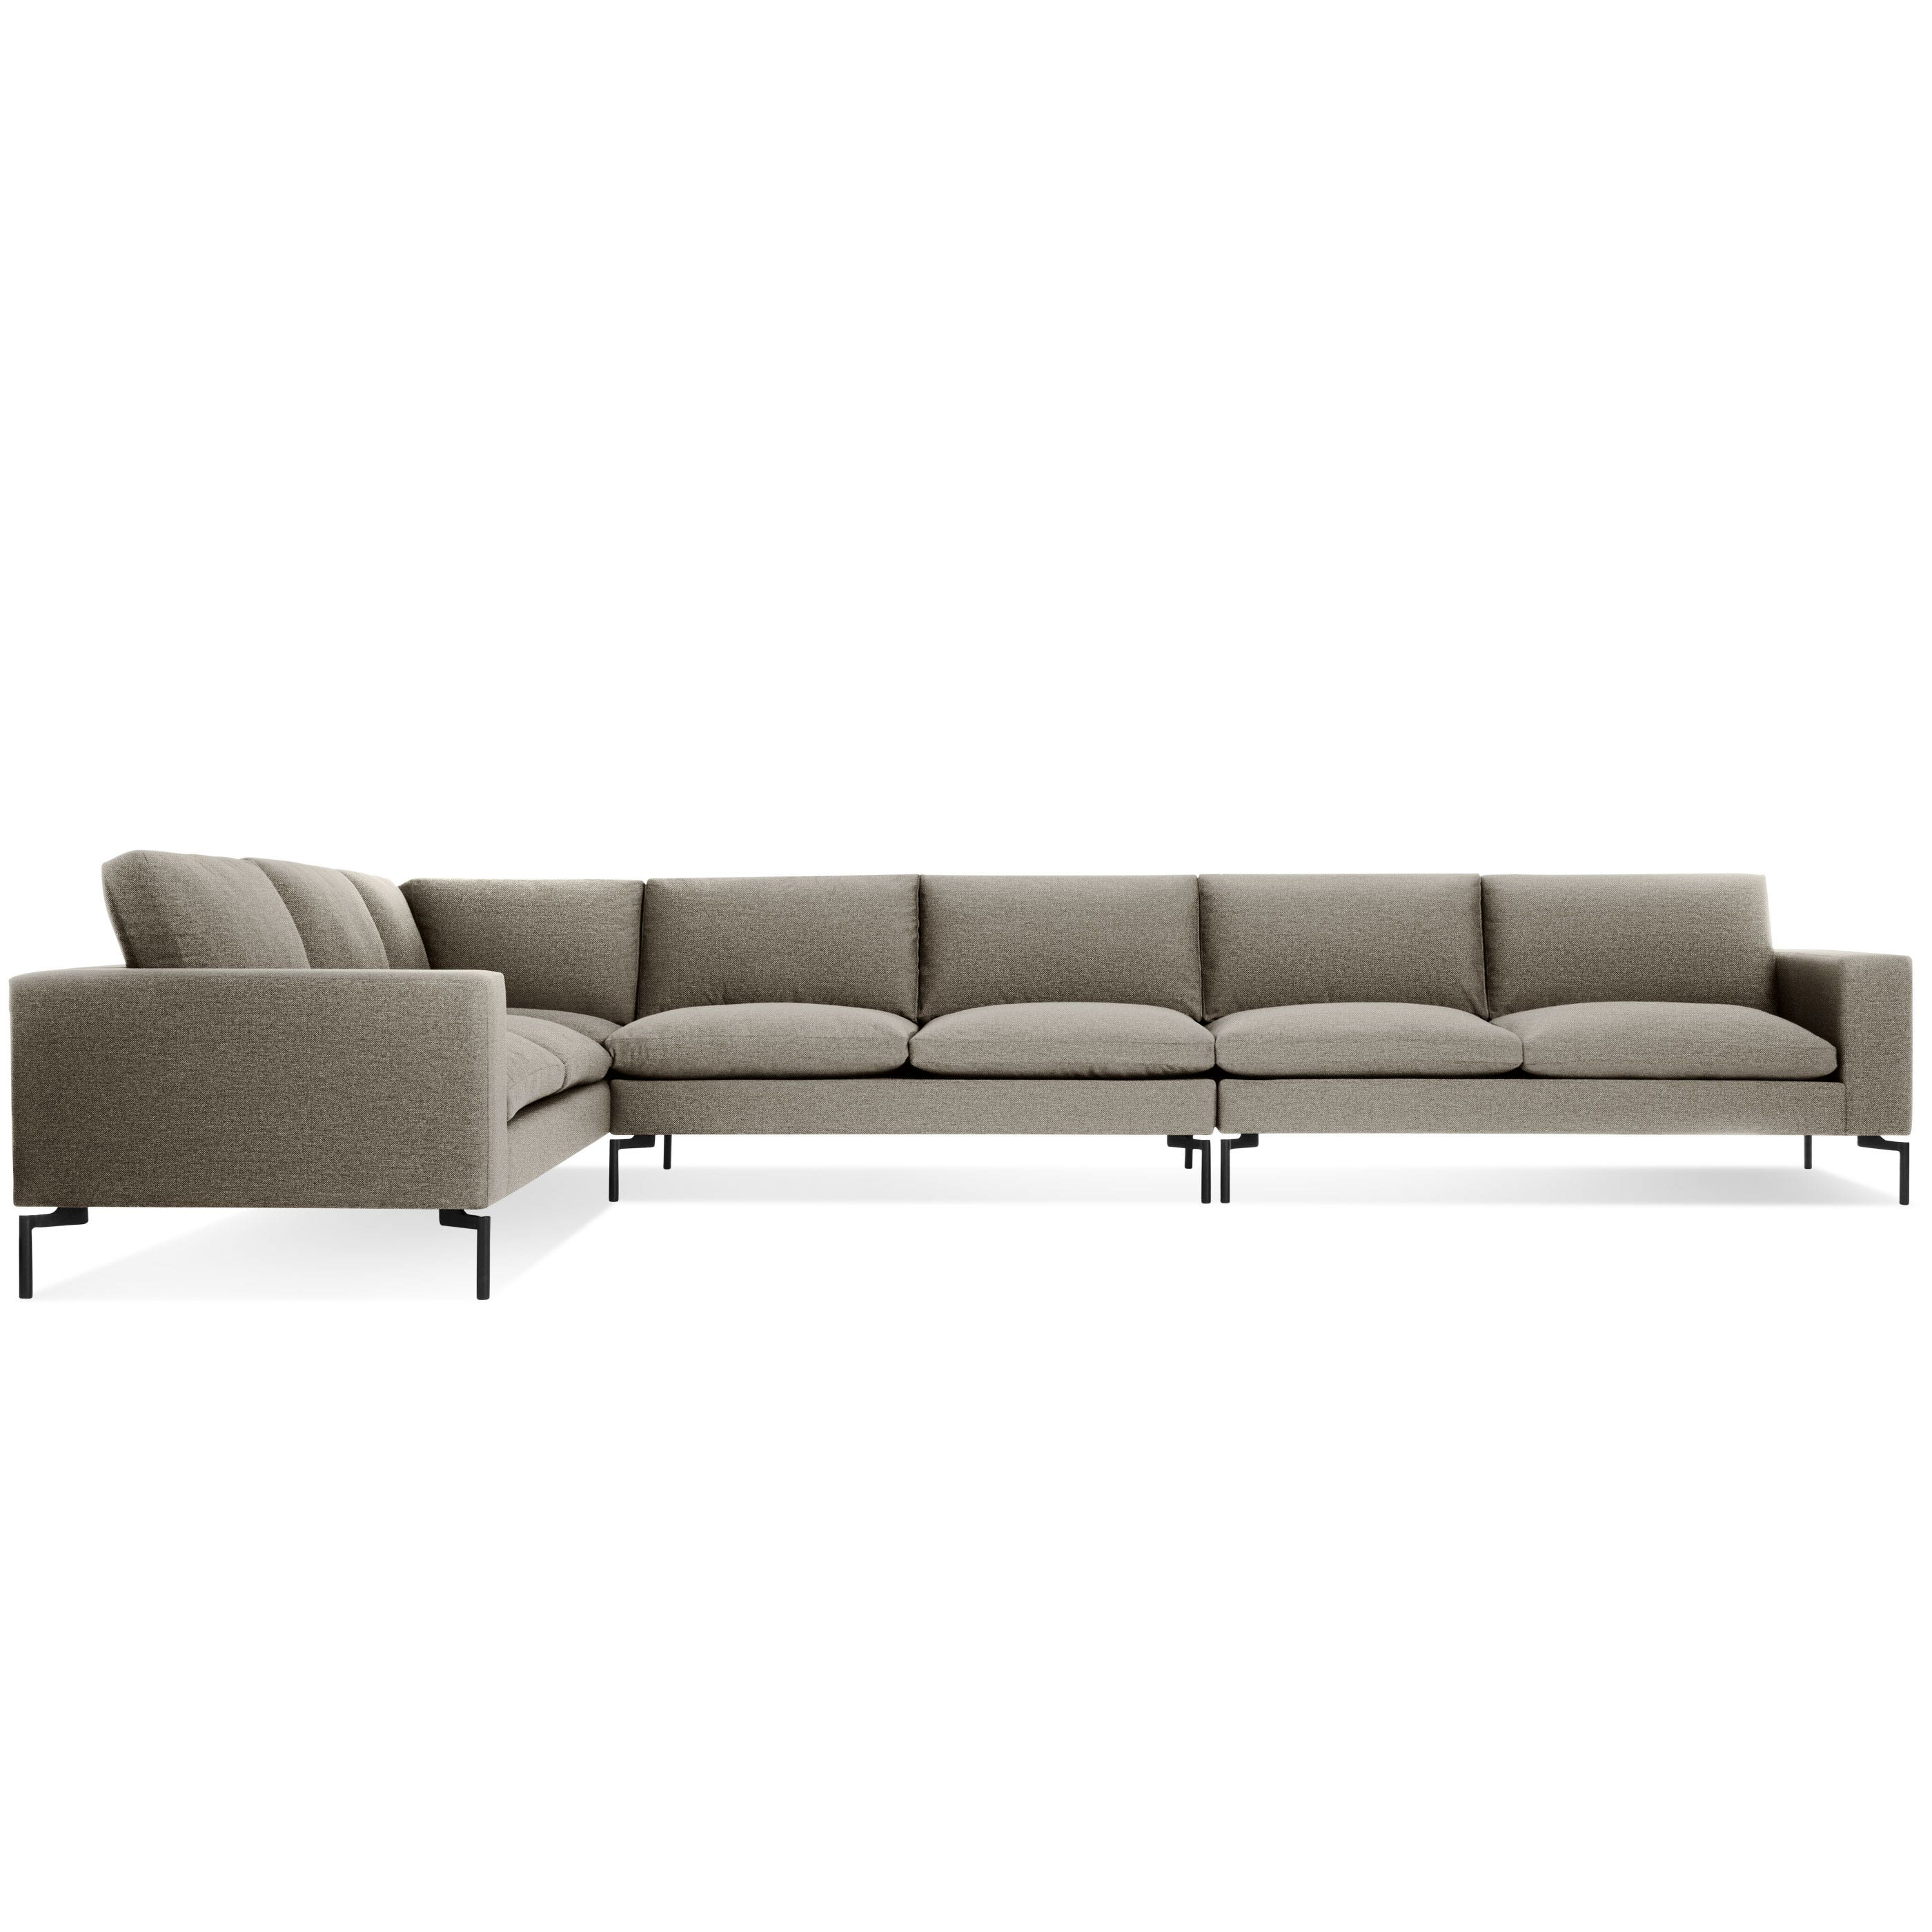 Previous Image New Standard Left Sectional Sofa   Large   Sanford Black /  Black ...